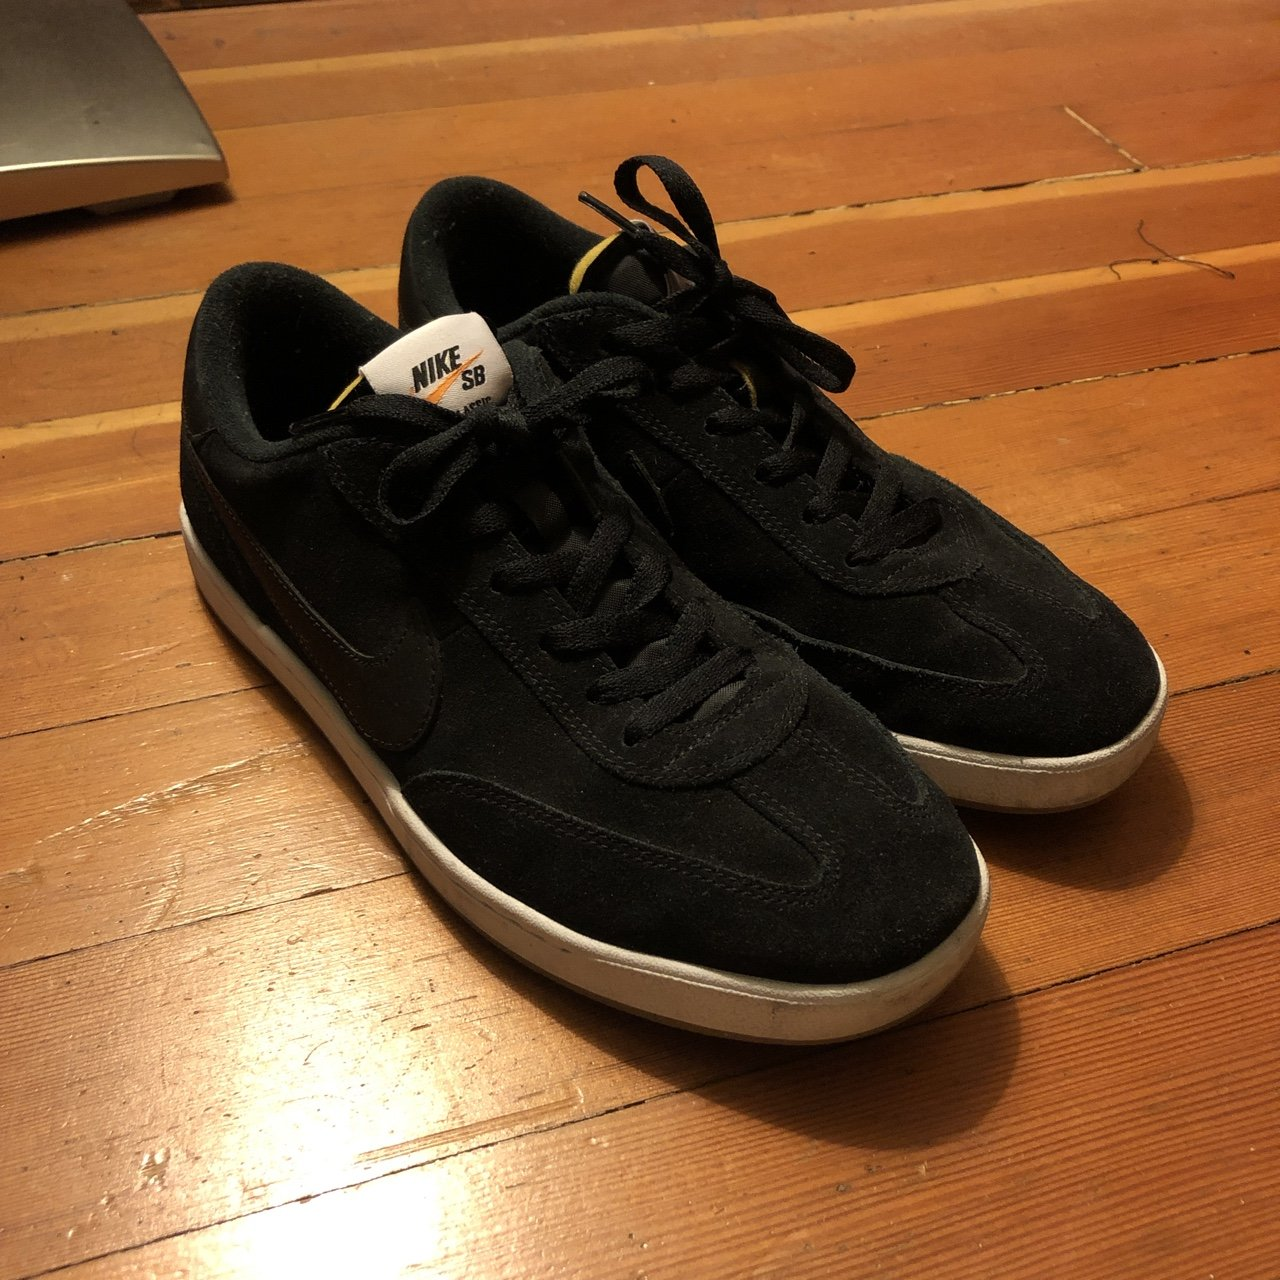 40aa3d9d0c35f1 Selling these super dope Nike SB fc classic shoes in a black - Depop